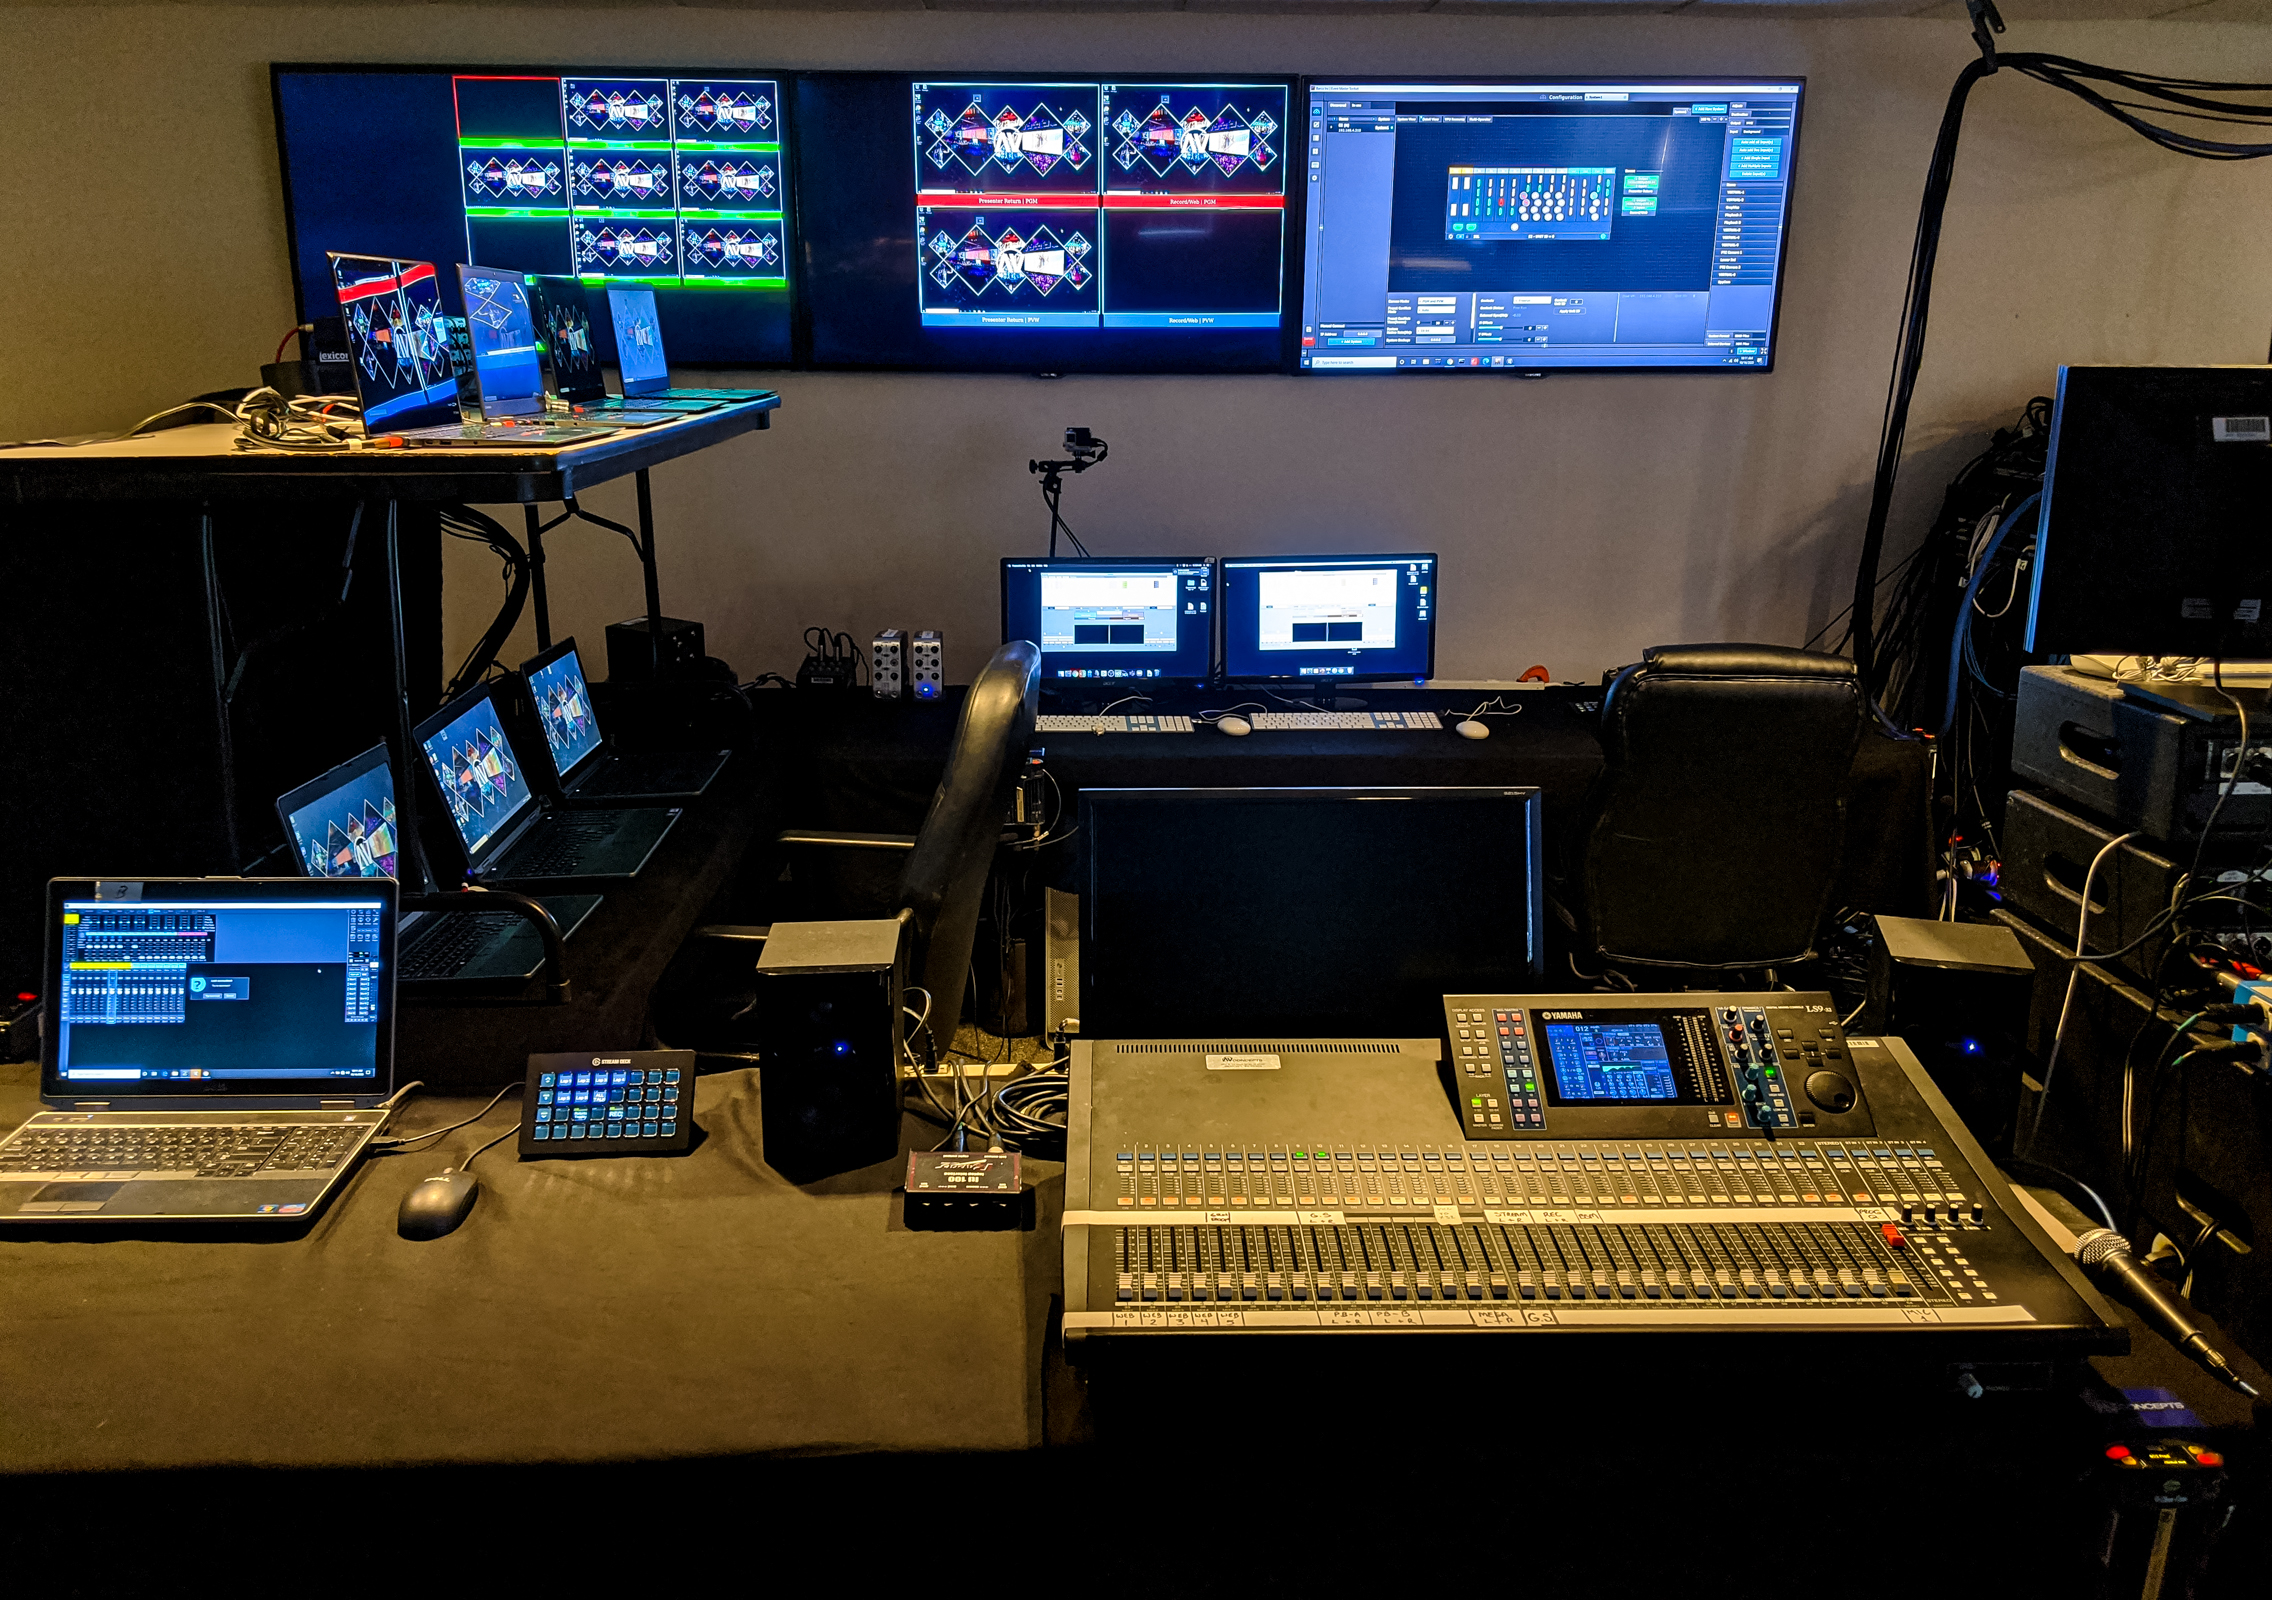 Virtual Events Require Platform, People, and Production. Let's Talk Production.